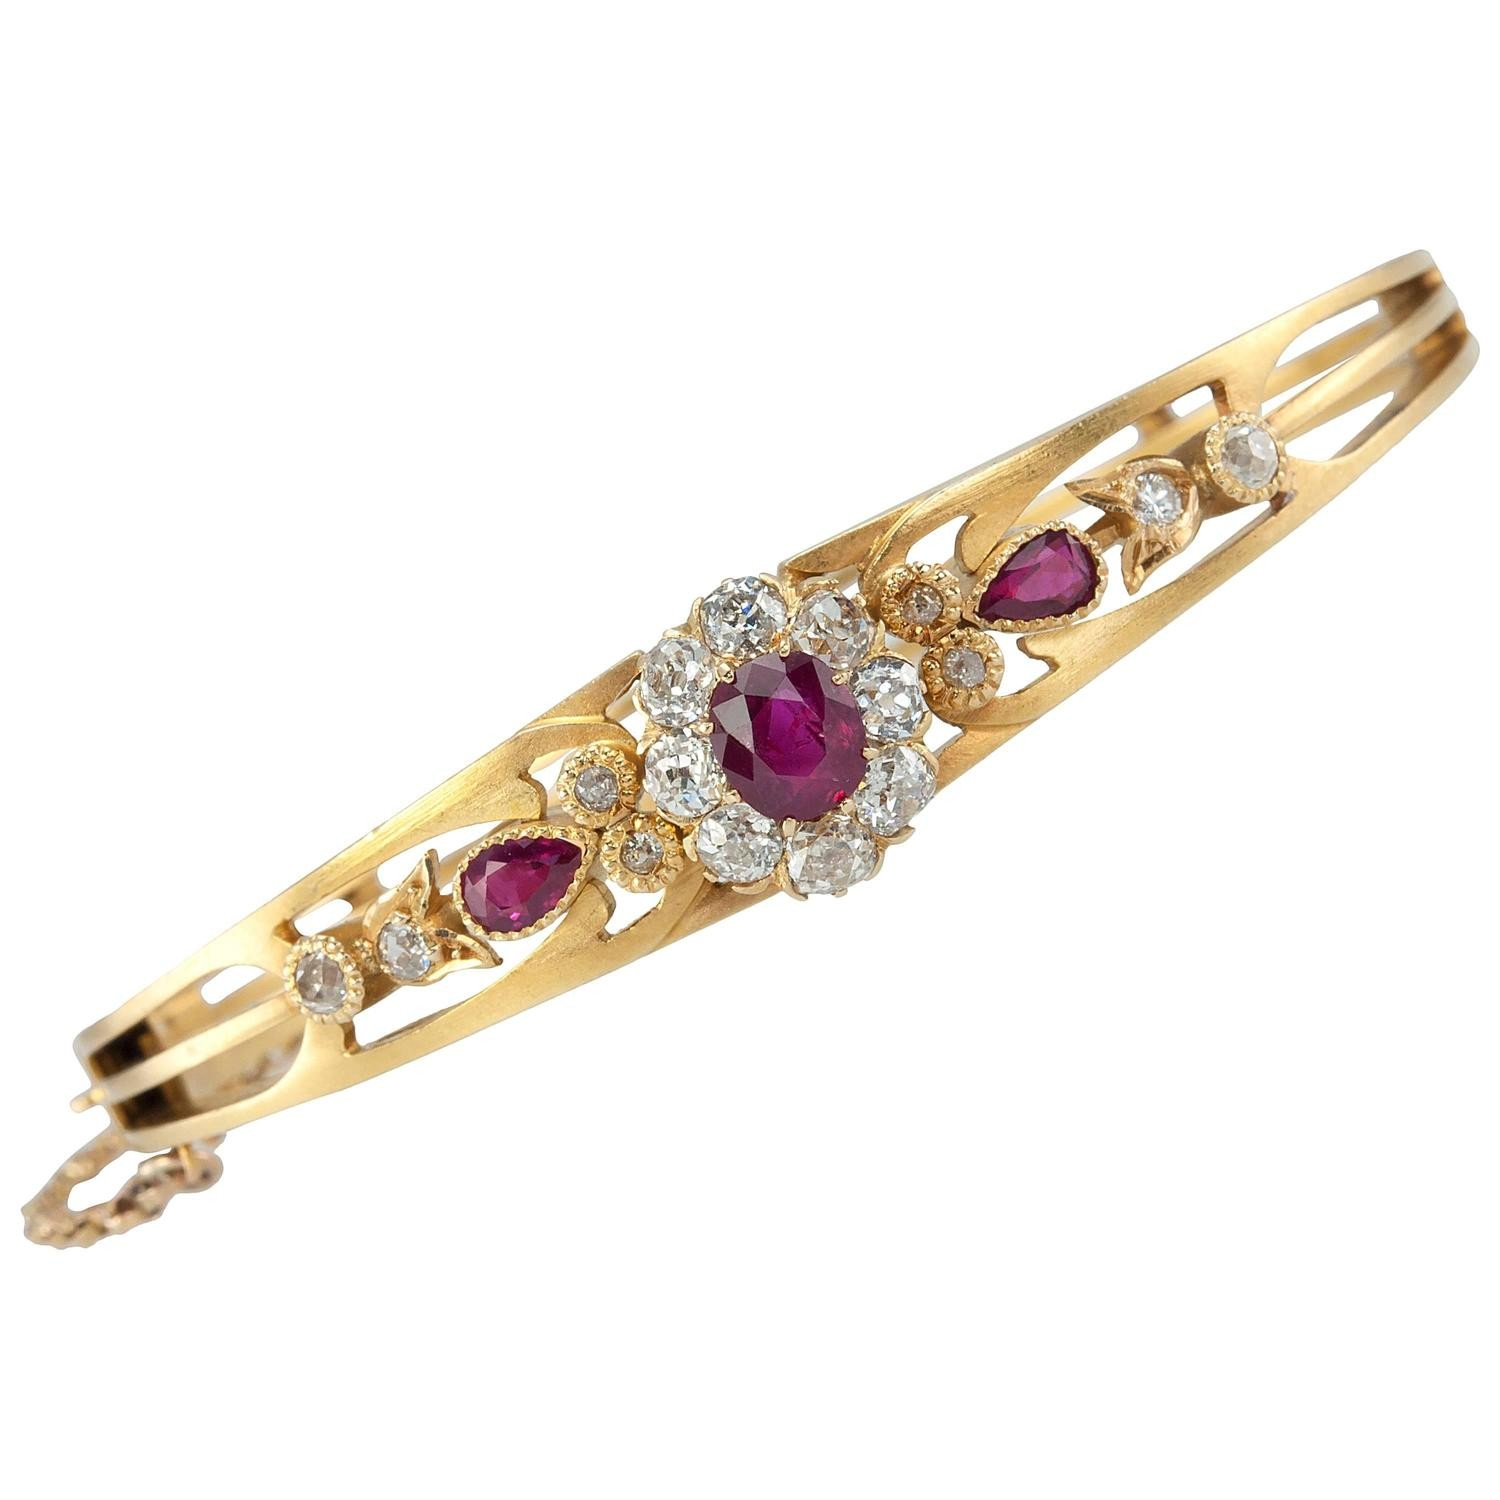 Victorian Burma Ruby And Diamond Cer Gold Bangle